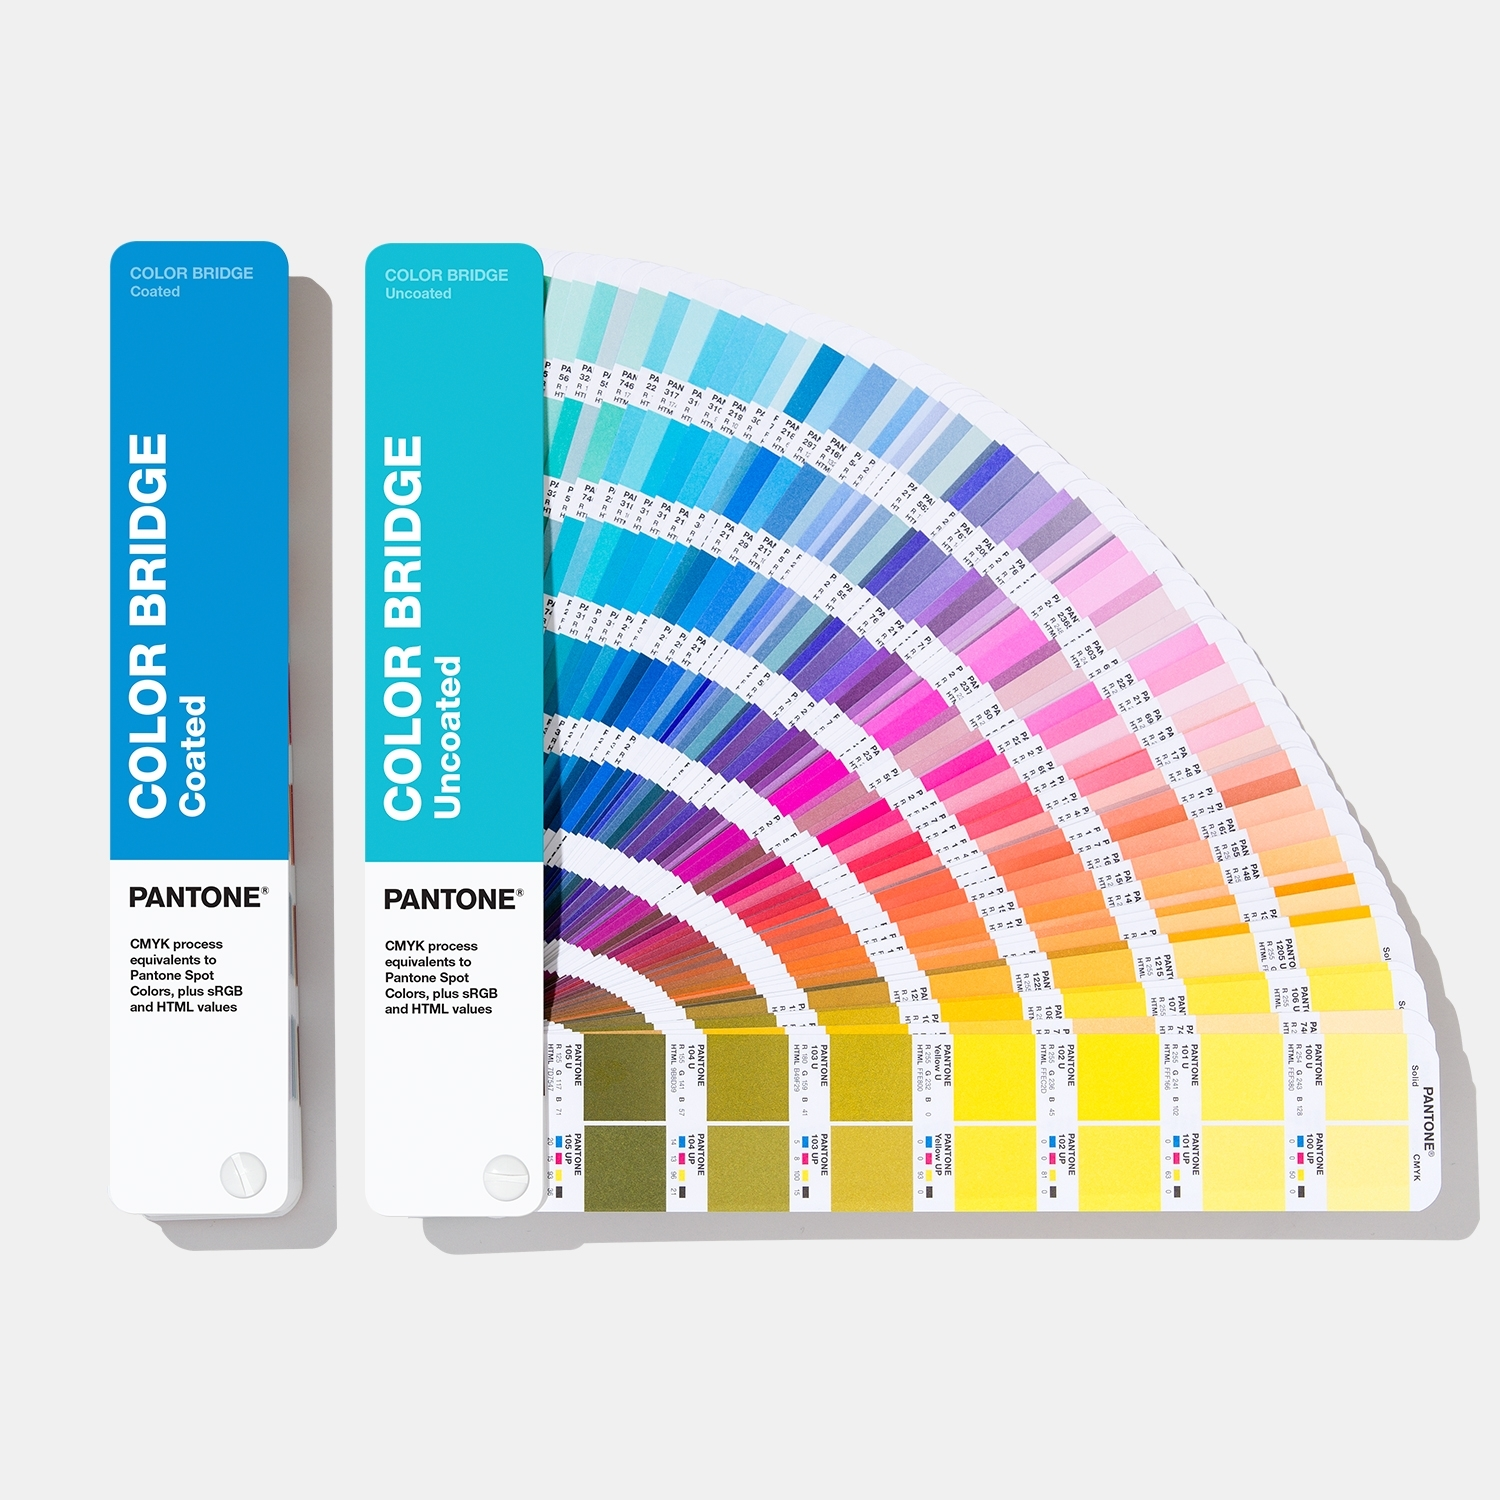 Pantone Color Bridge Guide Set | Coated & Uncoated Translate Pantone Colors into CMYK, HTML, RGB - View 1